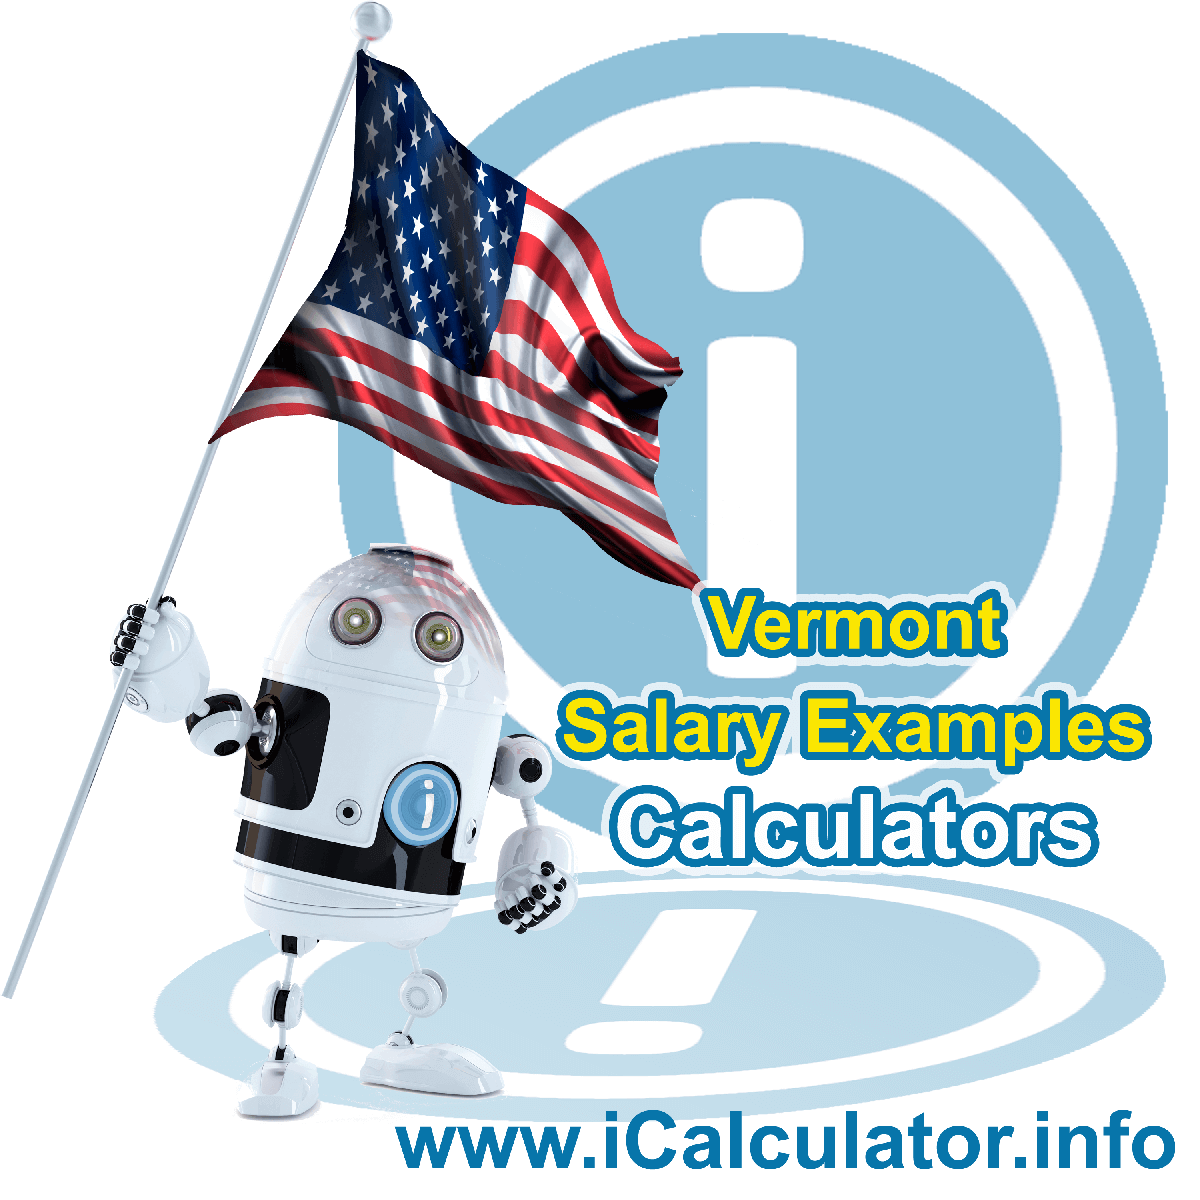 Vermont Salary Example for $160.00 in 2020 | iCalculator | $160.00 salary example for employee and employer paying Vermont State tincome taxes. Detailed salary after tax calculation including Vermont State Tax, Federal State Tax, Medicare Deductions, Social Security, Capital Gains and other income tax and salary deductions complete with supporting Vermont state tax tables